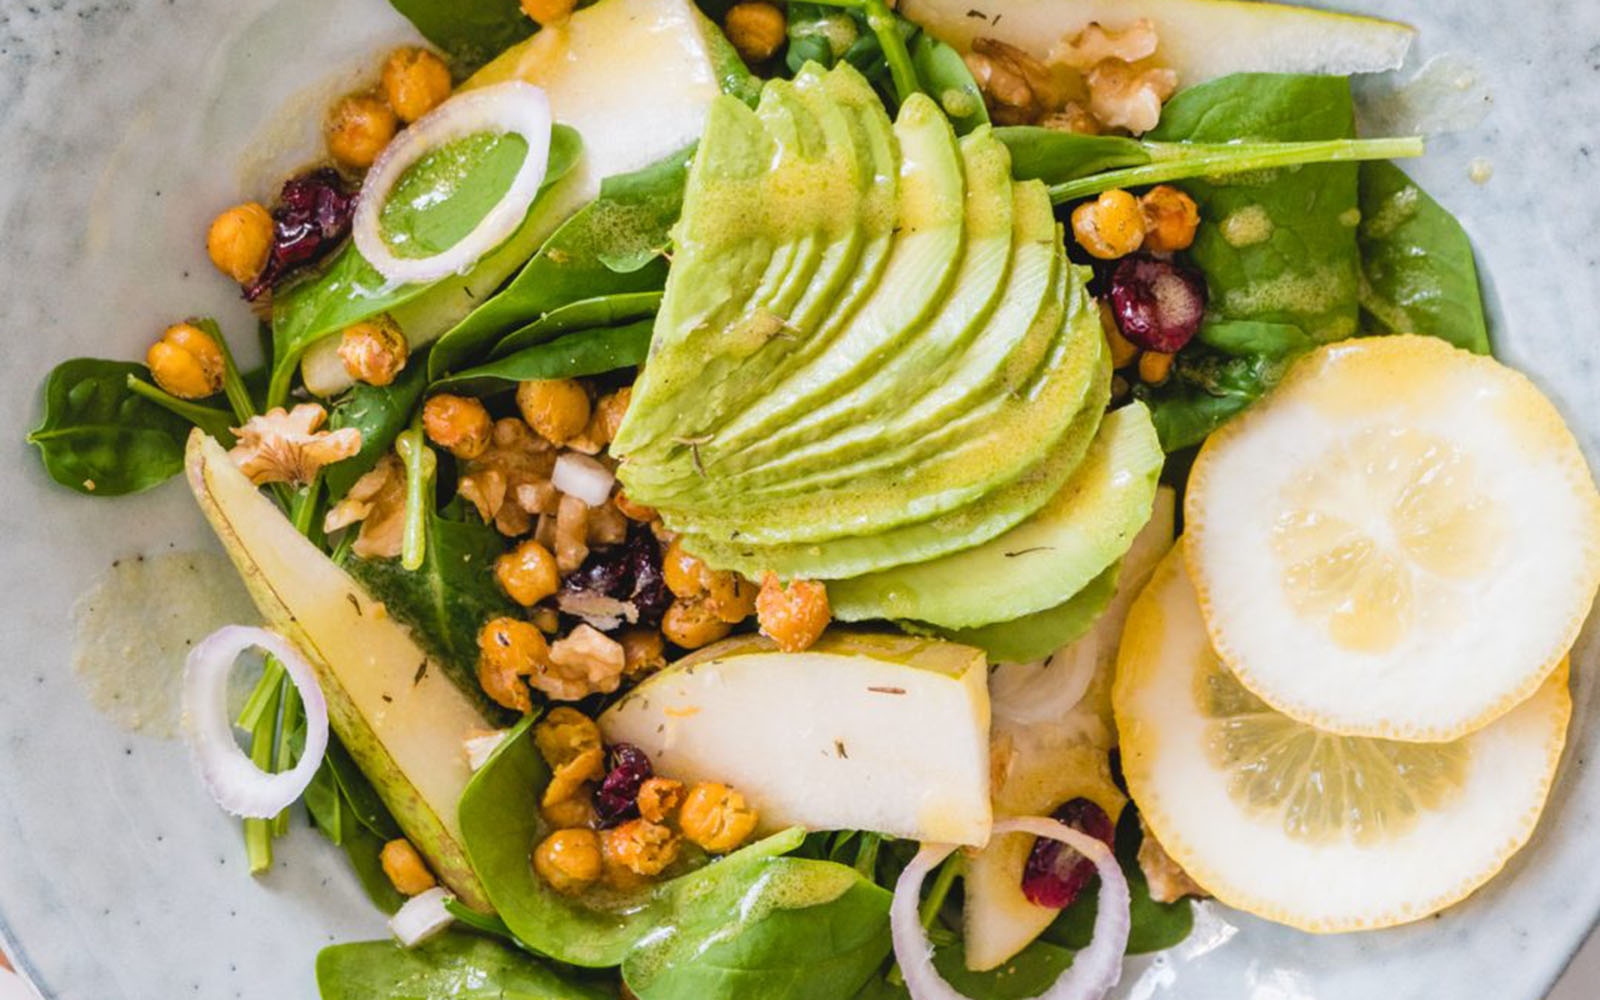 Vegan Pear Salad With Crispy Chickpea Croutons